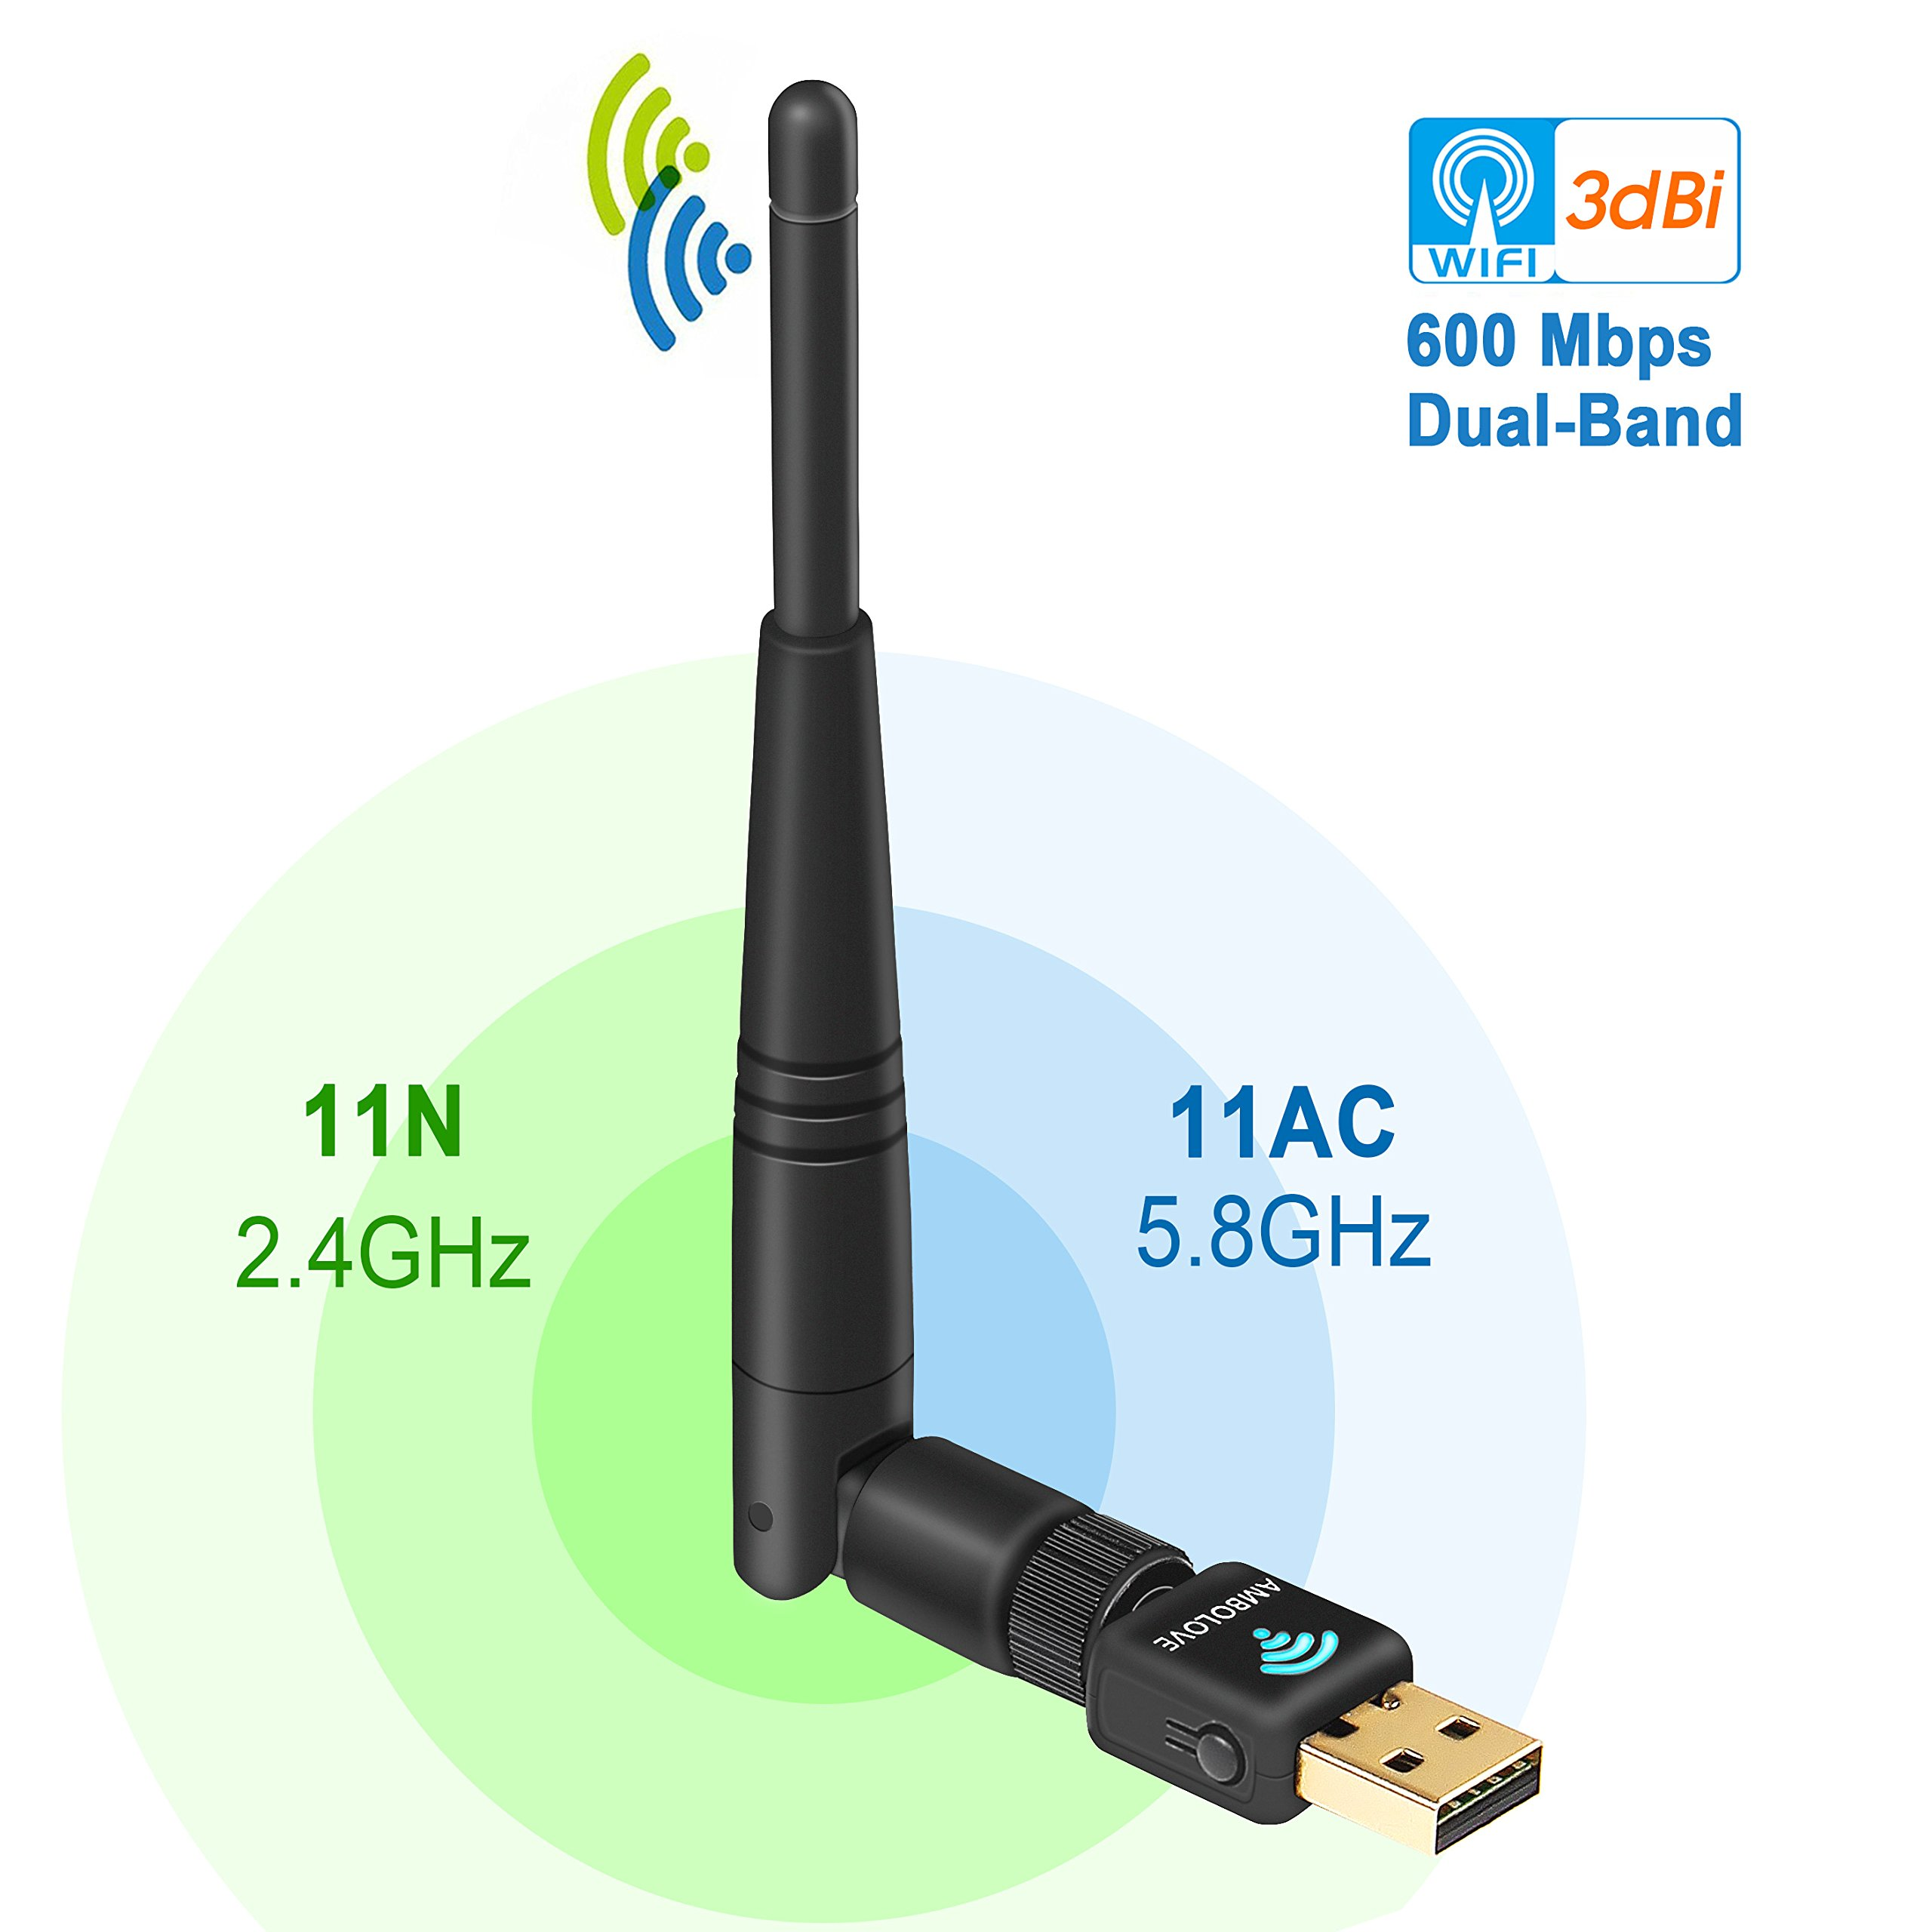 USB Wifi Adapter, AMBOLOVE AC600Mbps Wireless Wifi Dongle Dual Band(2.4G/150Mbps+5G/433Mbps) 802.11N/G/B Antenna Network Lan Card for PC Desktop Laptop Support Windows 10/8.1/8/7/XP/Vista/Mac OS/Linux